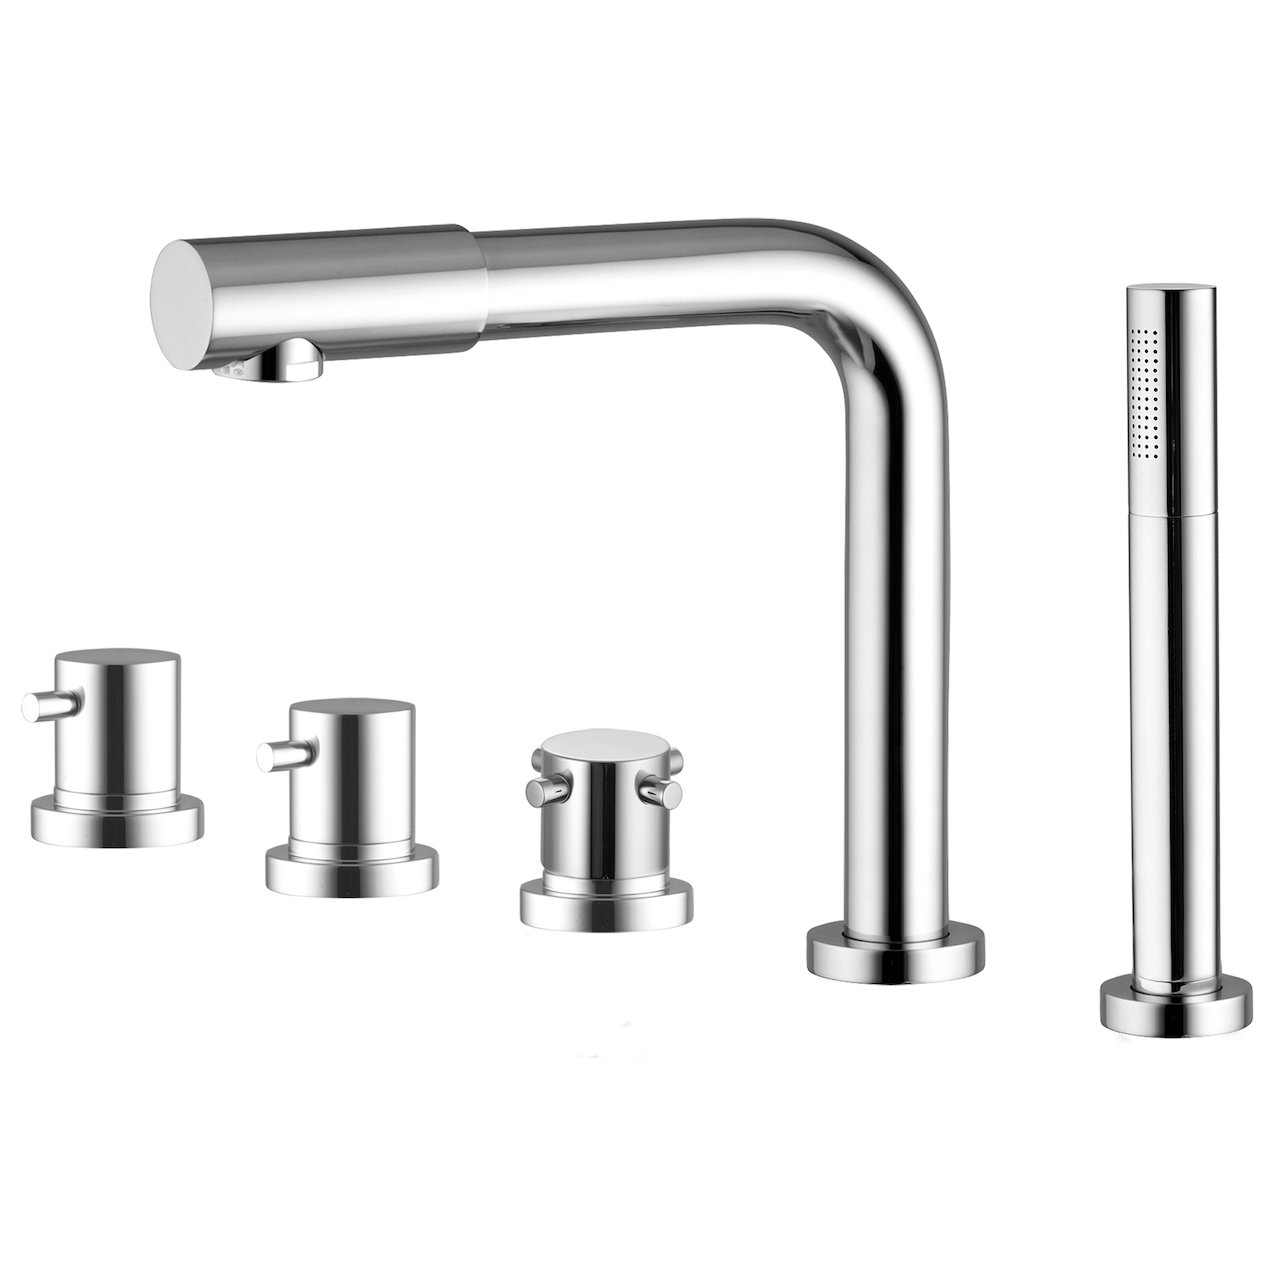 Deck mounted bath tap Voyager